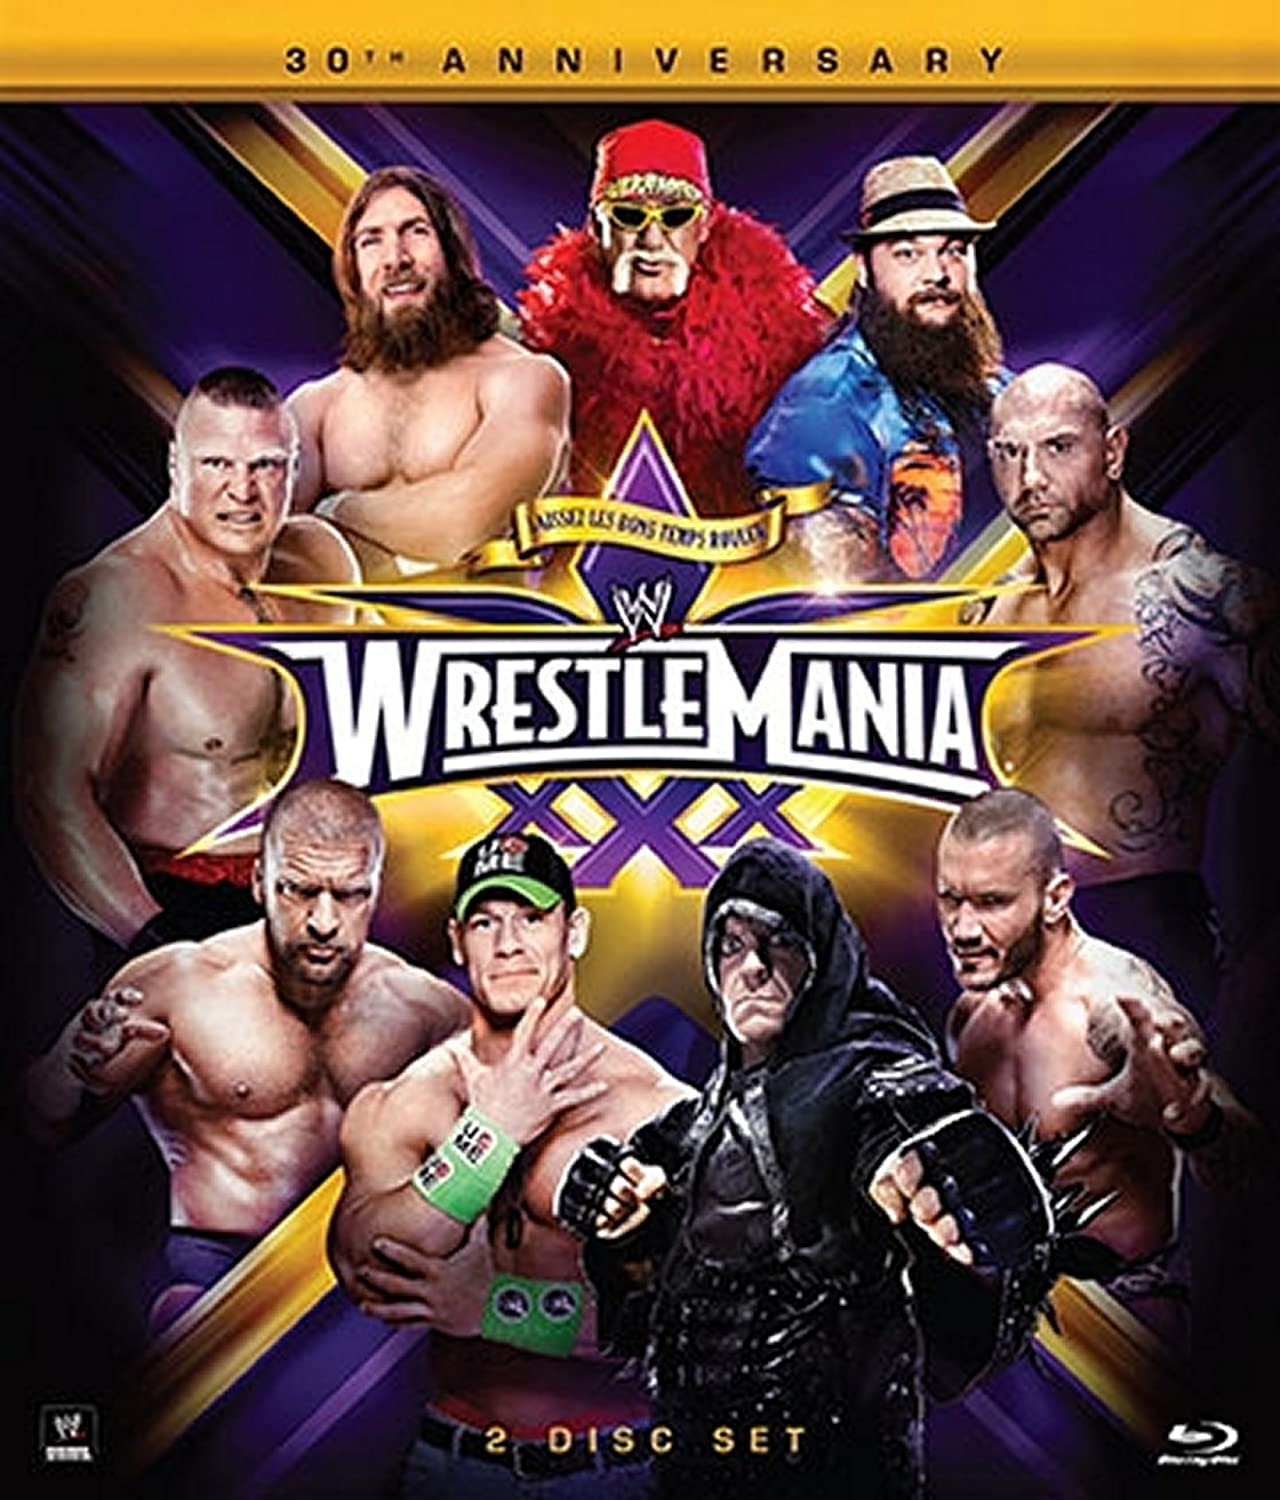 Wrestlemania 30 [Blu-ray] [Import] B00HRUQARI